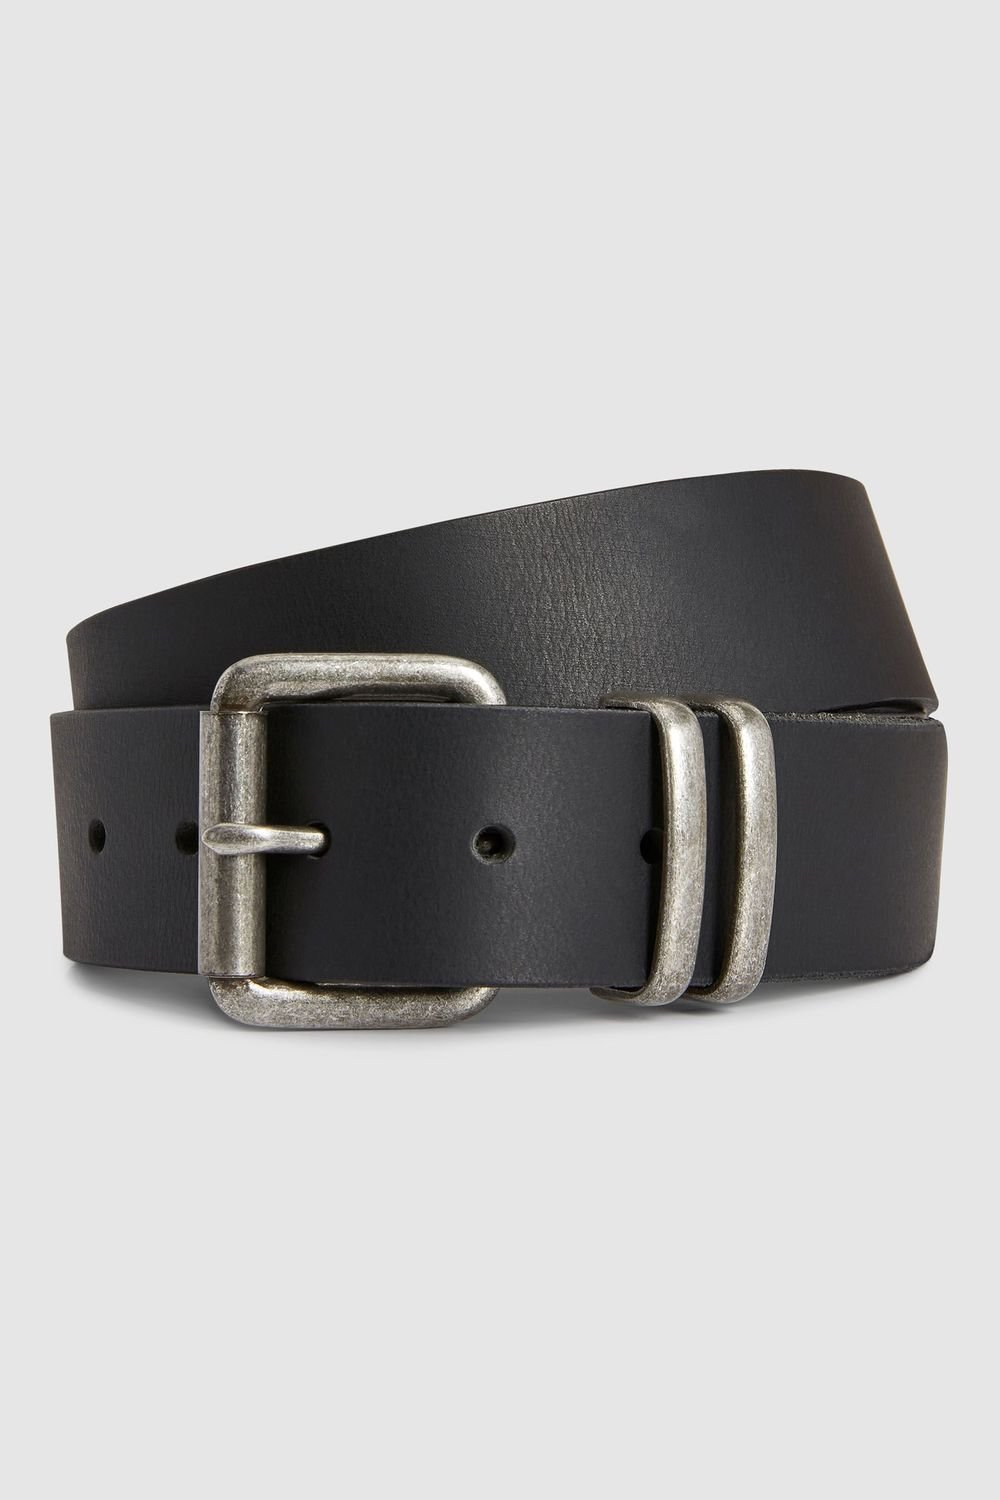 7150 Loopes Fit Over Sunglass Wear Over Shades: Next Leather Belt With Metal Loops Online